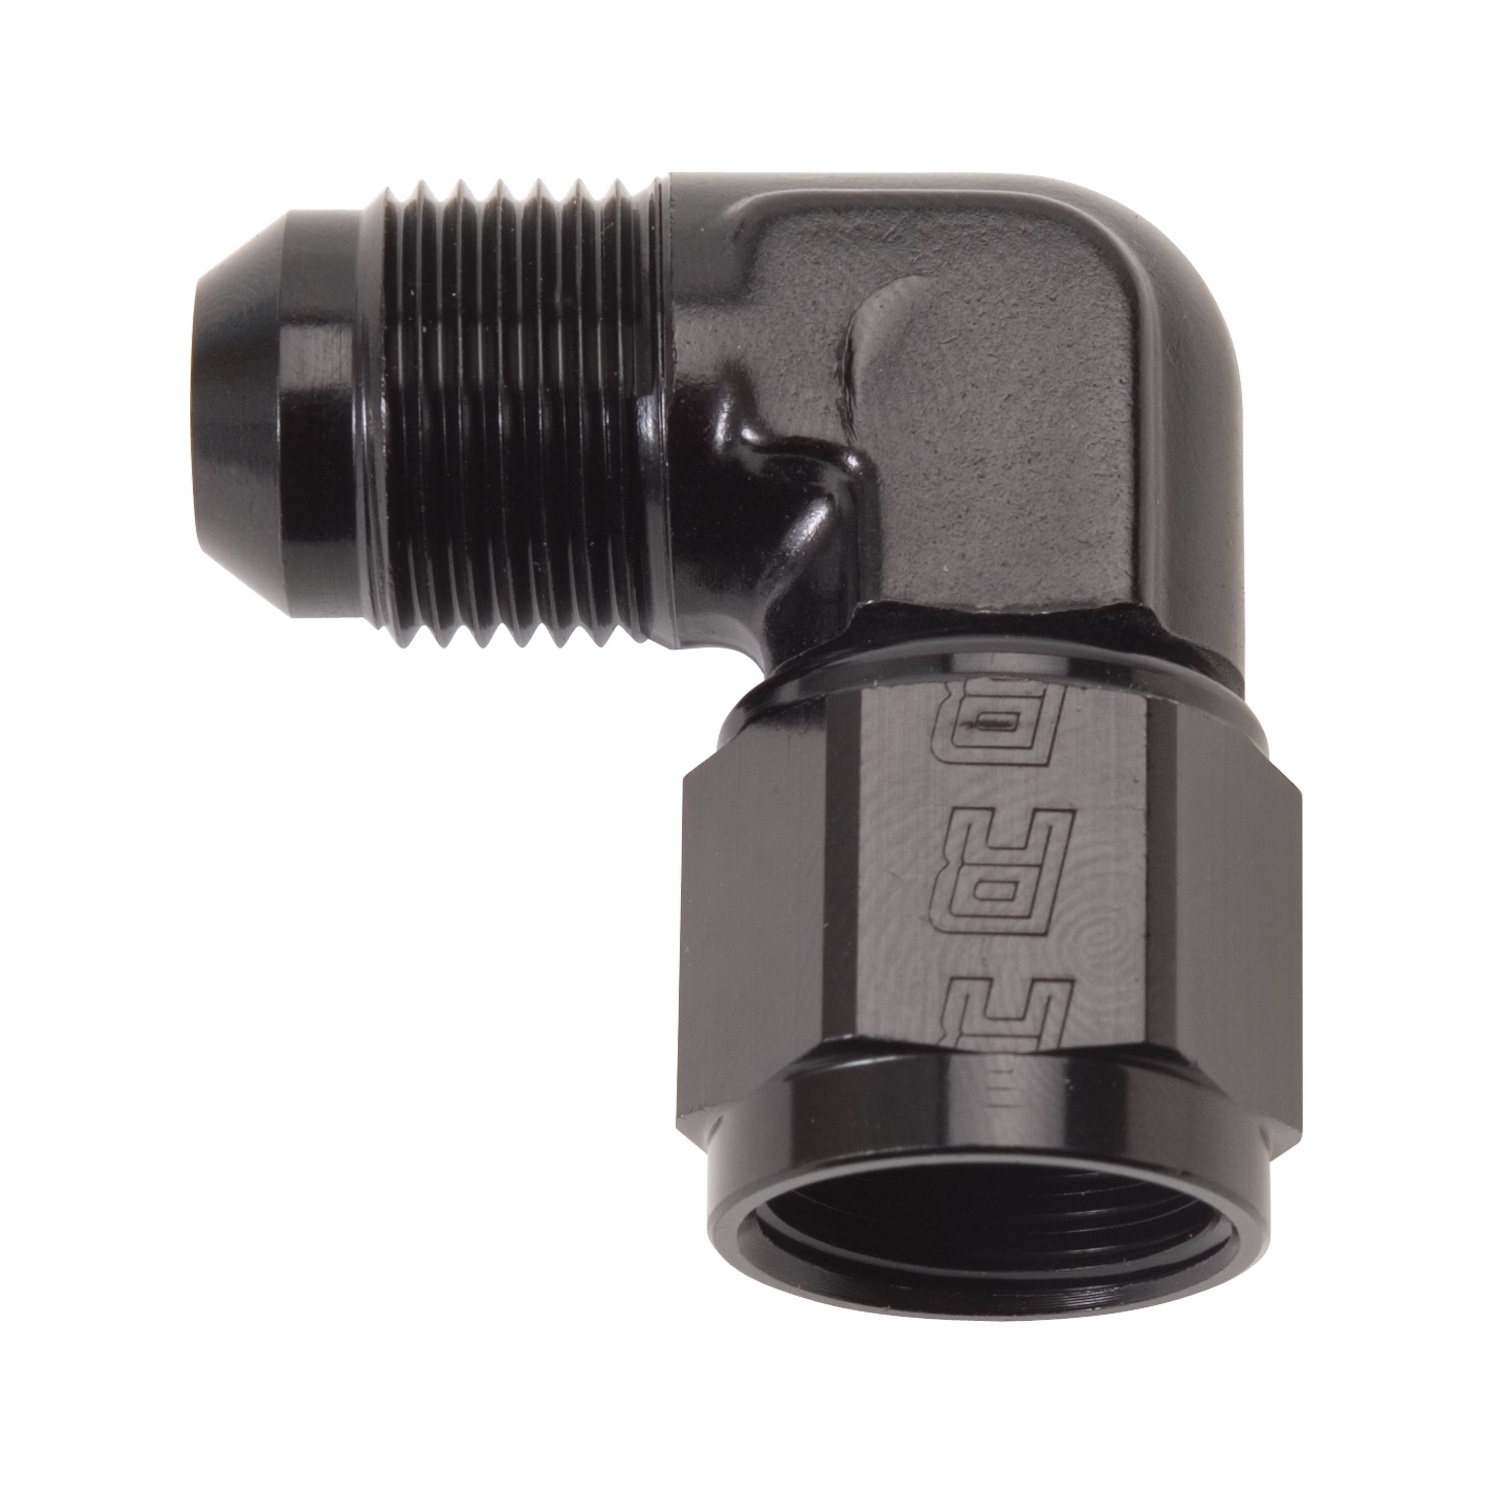 Russell specialty an adapter fitting deg